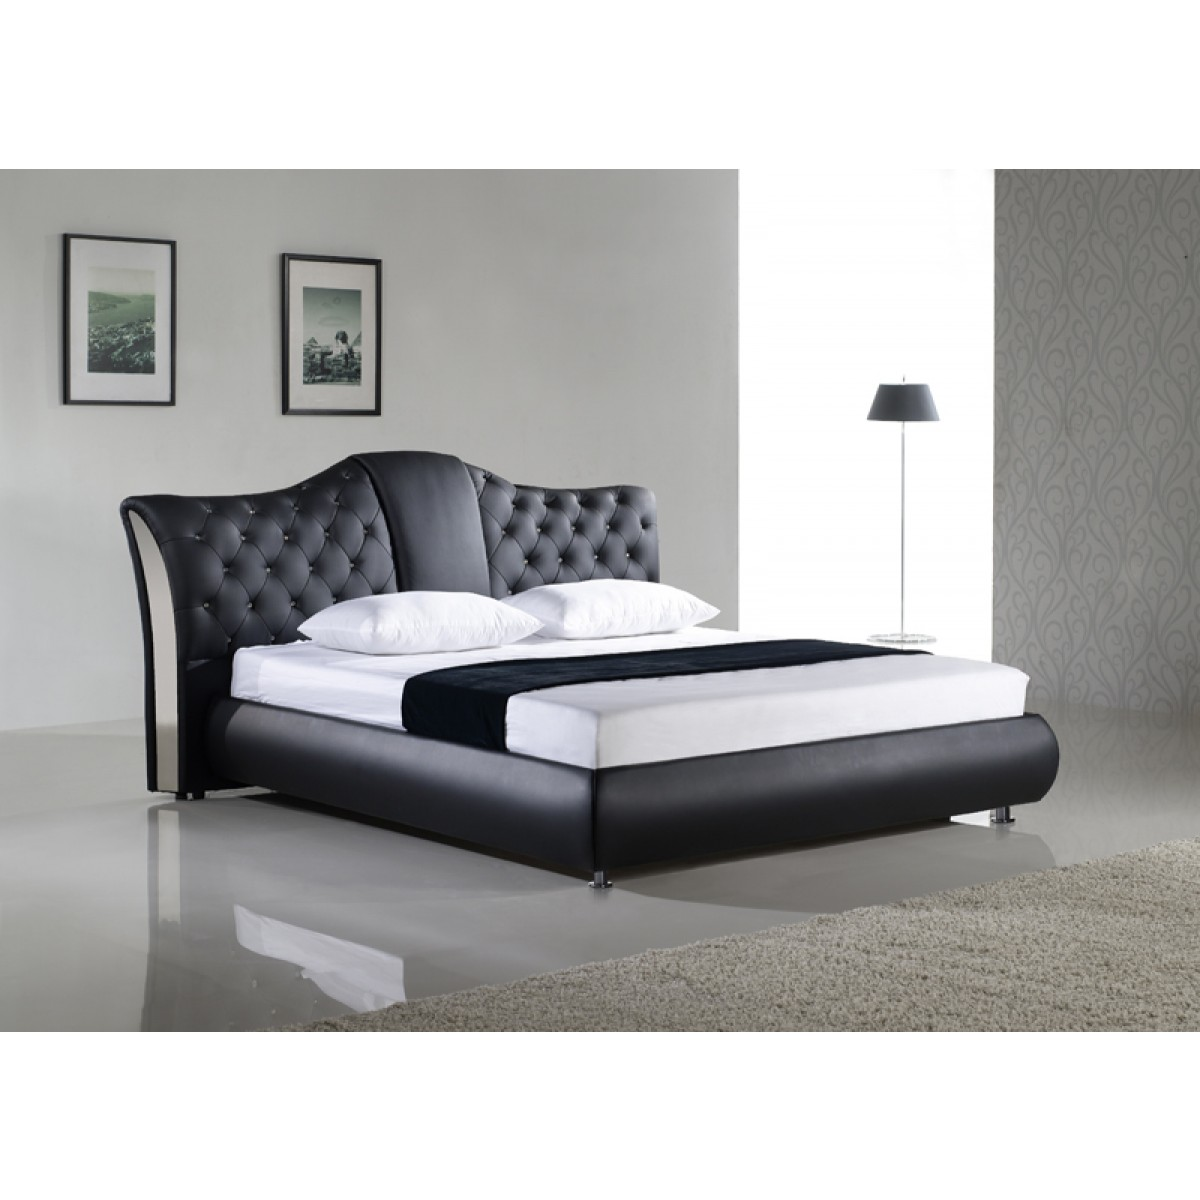 lit plus sommier lit matelas plus sommier clasf cdiscount lit 160 x 200 sommier 85 77 lit 140. Black Bedroom Furniture Sets. Home Design Ideas